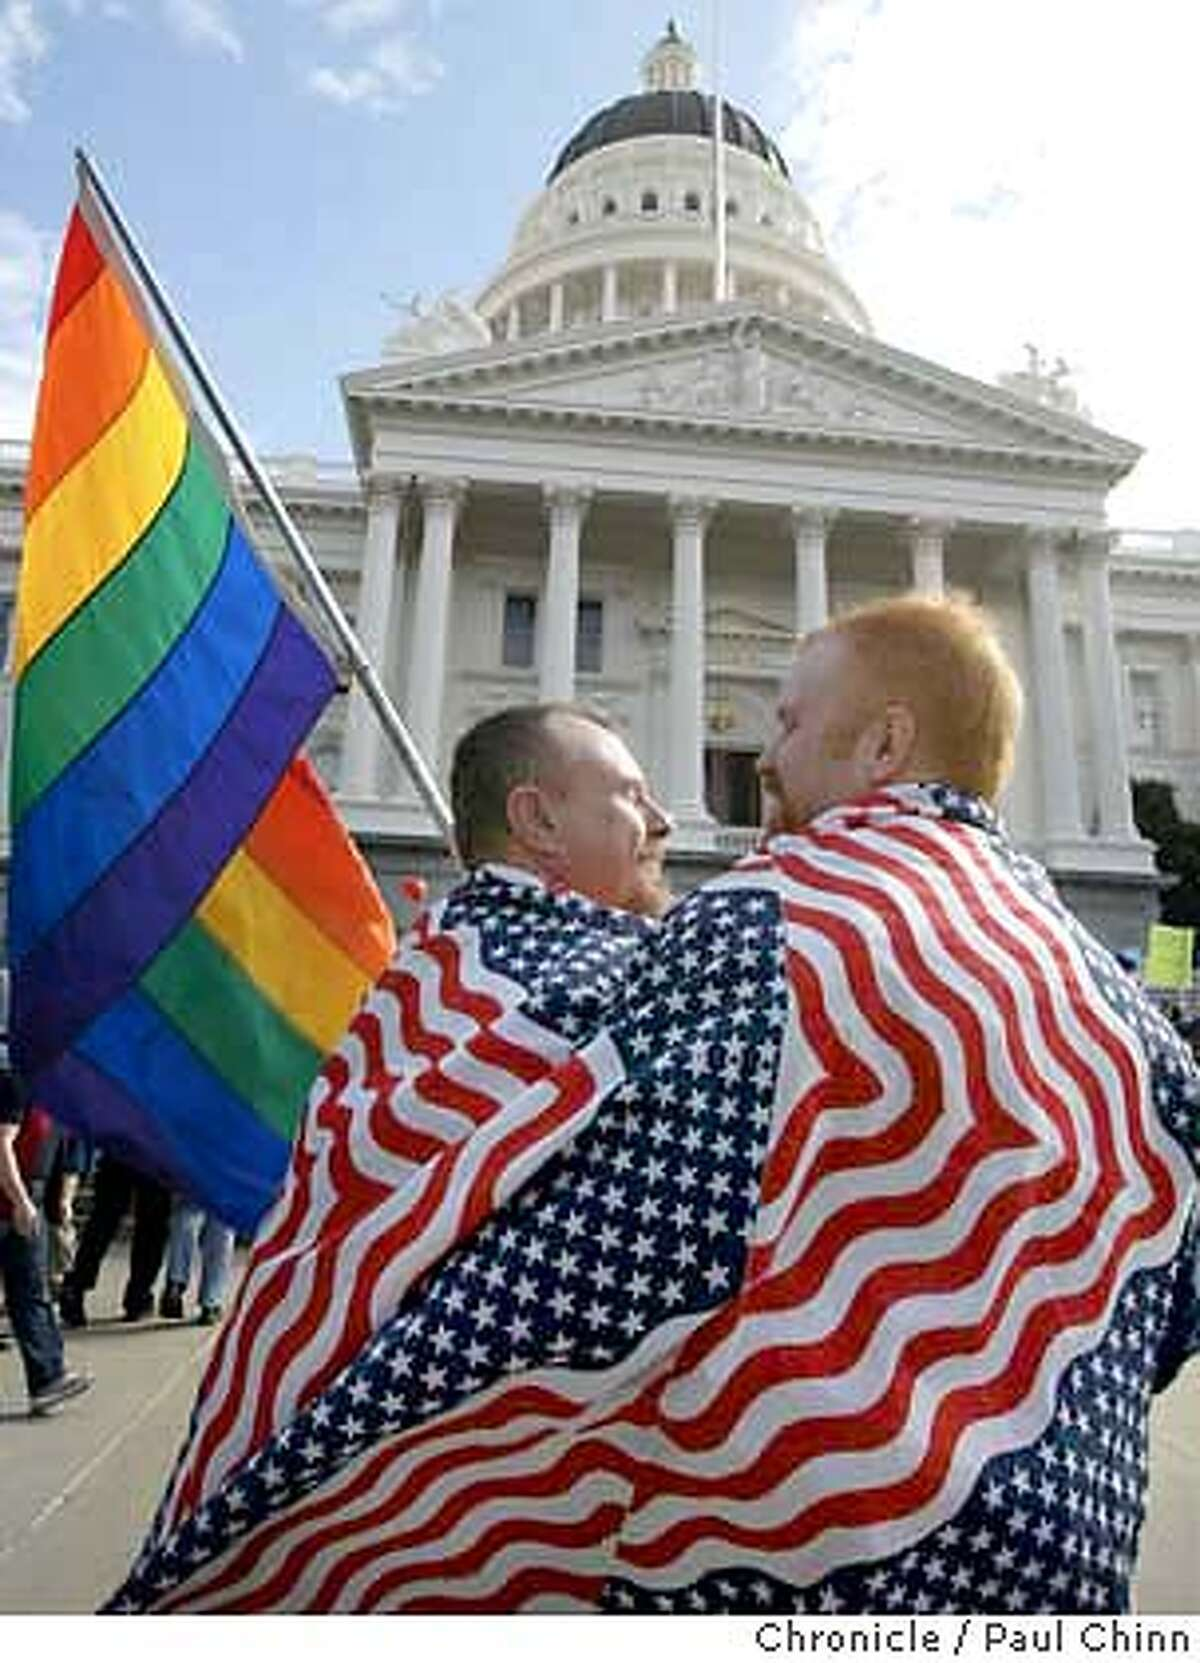 Mike Holland (left) and his partner Jim Gatteau draped themselves in red, white, blue - and rainbow - for the rally. The couple, together for eight months, don't want to rush into a marriage. Supporters of same-sex marriages held a rally in front of the State Capitol on 2/14/04 in Sacramento. PAUL CHINN / The Chronicle